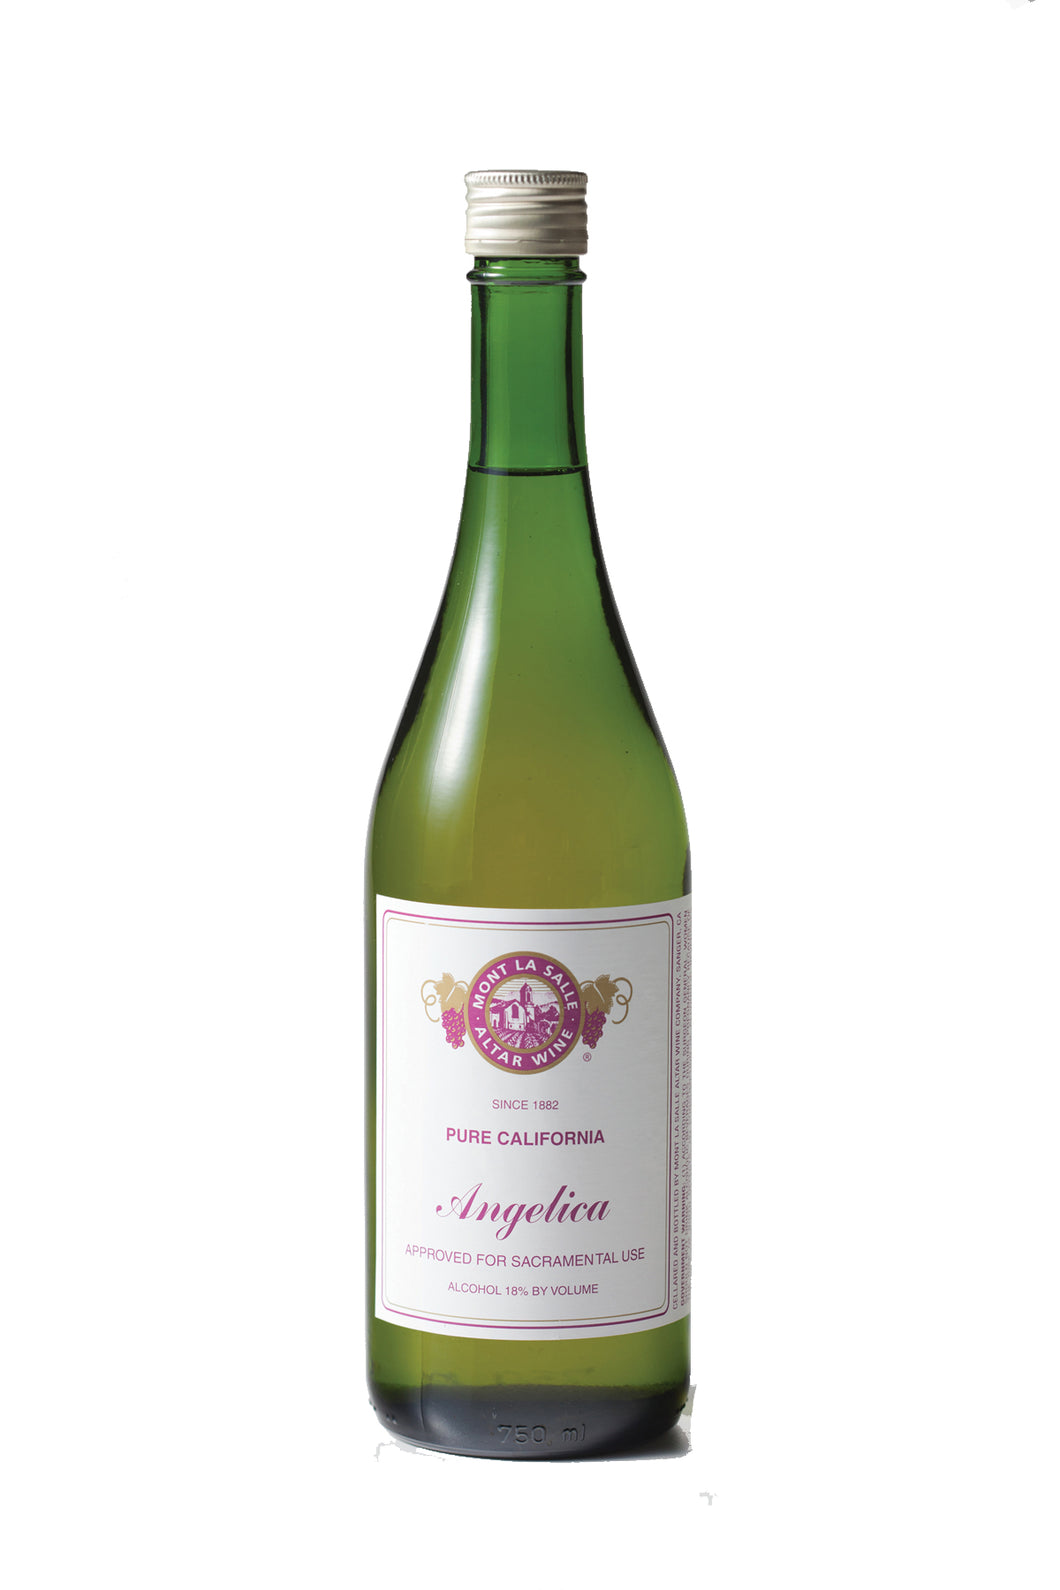 AMANGE: Mont La Salle Angelica Wine [12 (750ml) Bottles Per Case]